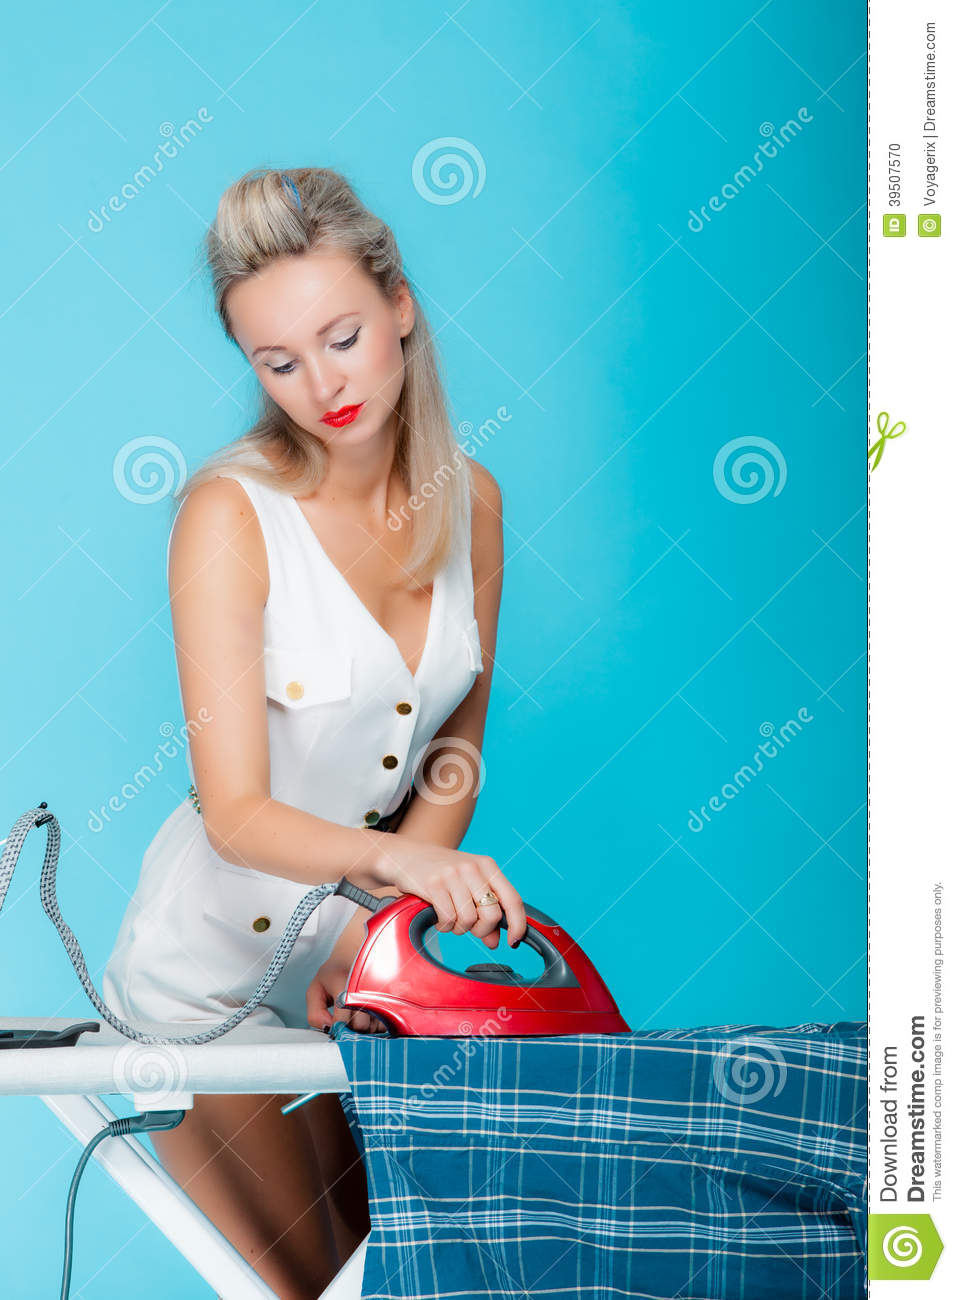 girl retro style ironing male shirt, woman housewife in domestic role.